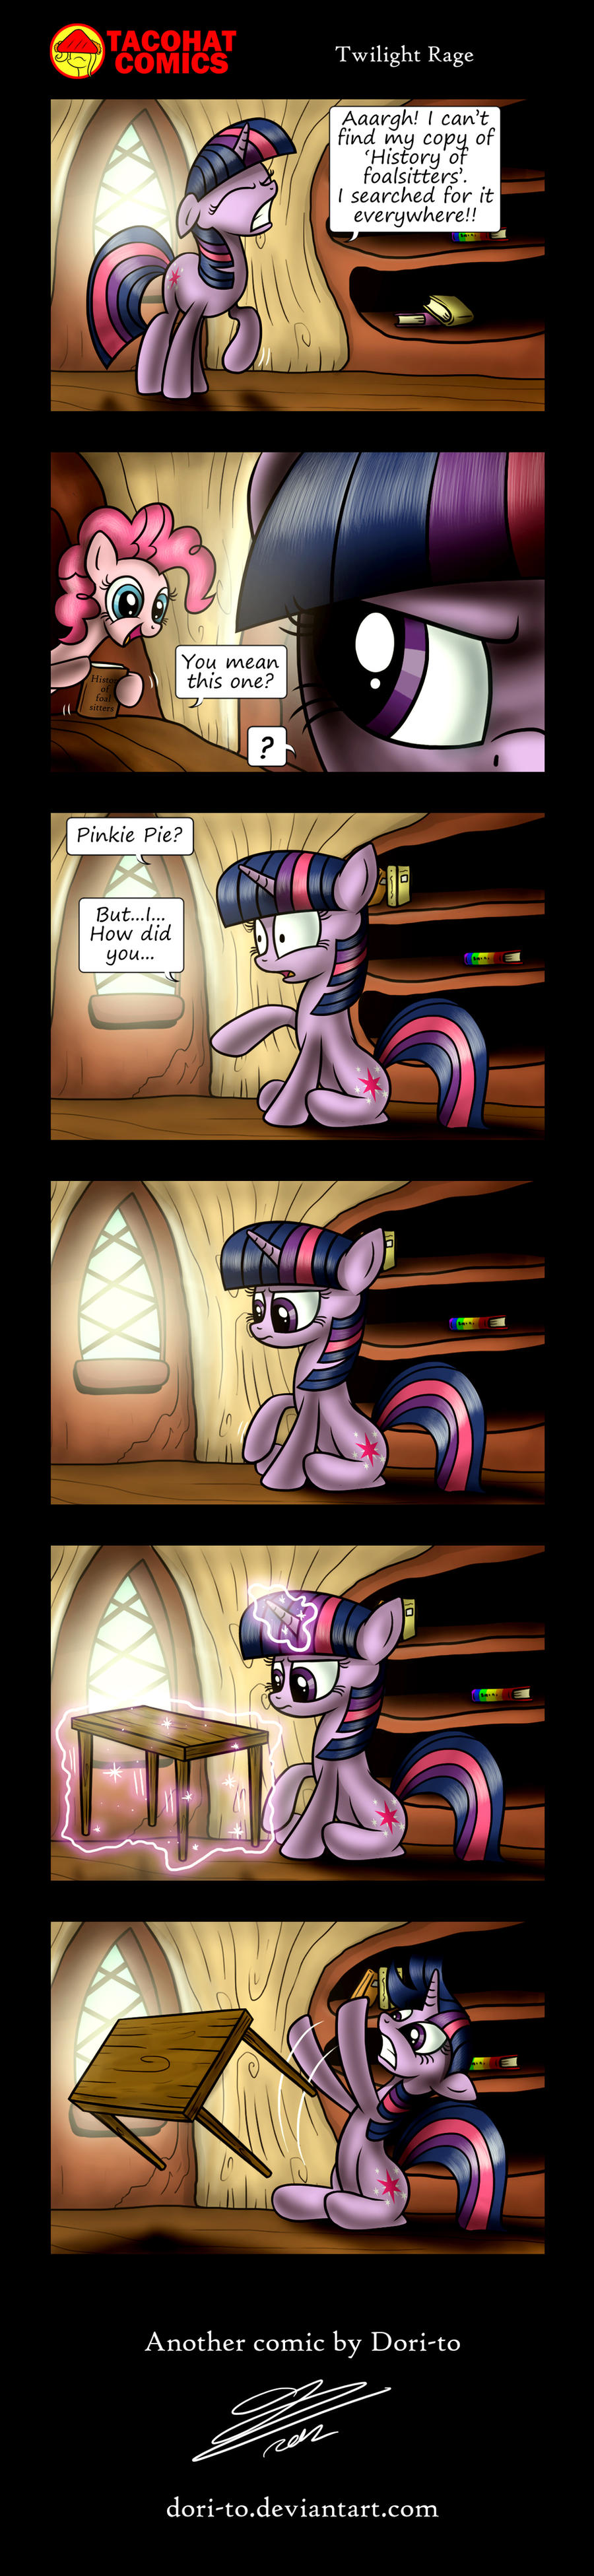 Twilight Rage by Dori-to